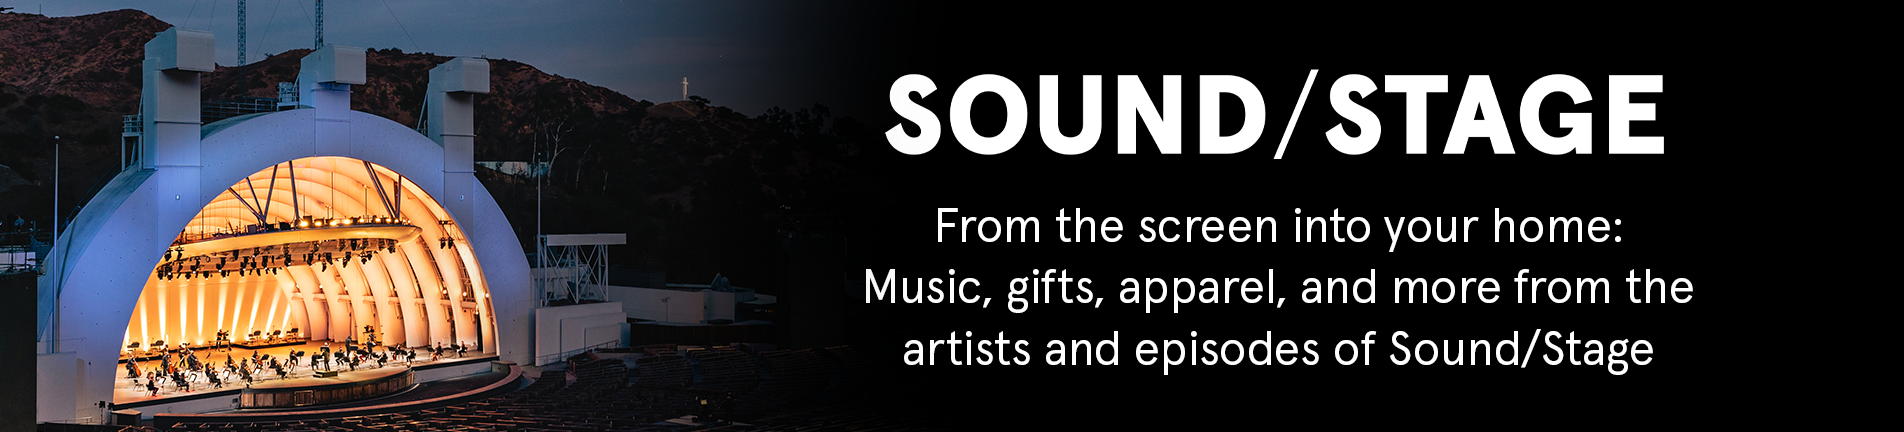 Sound/Stage Collection